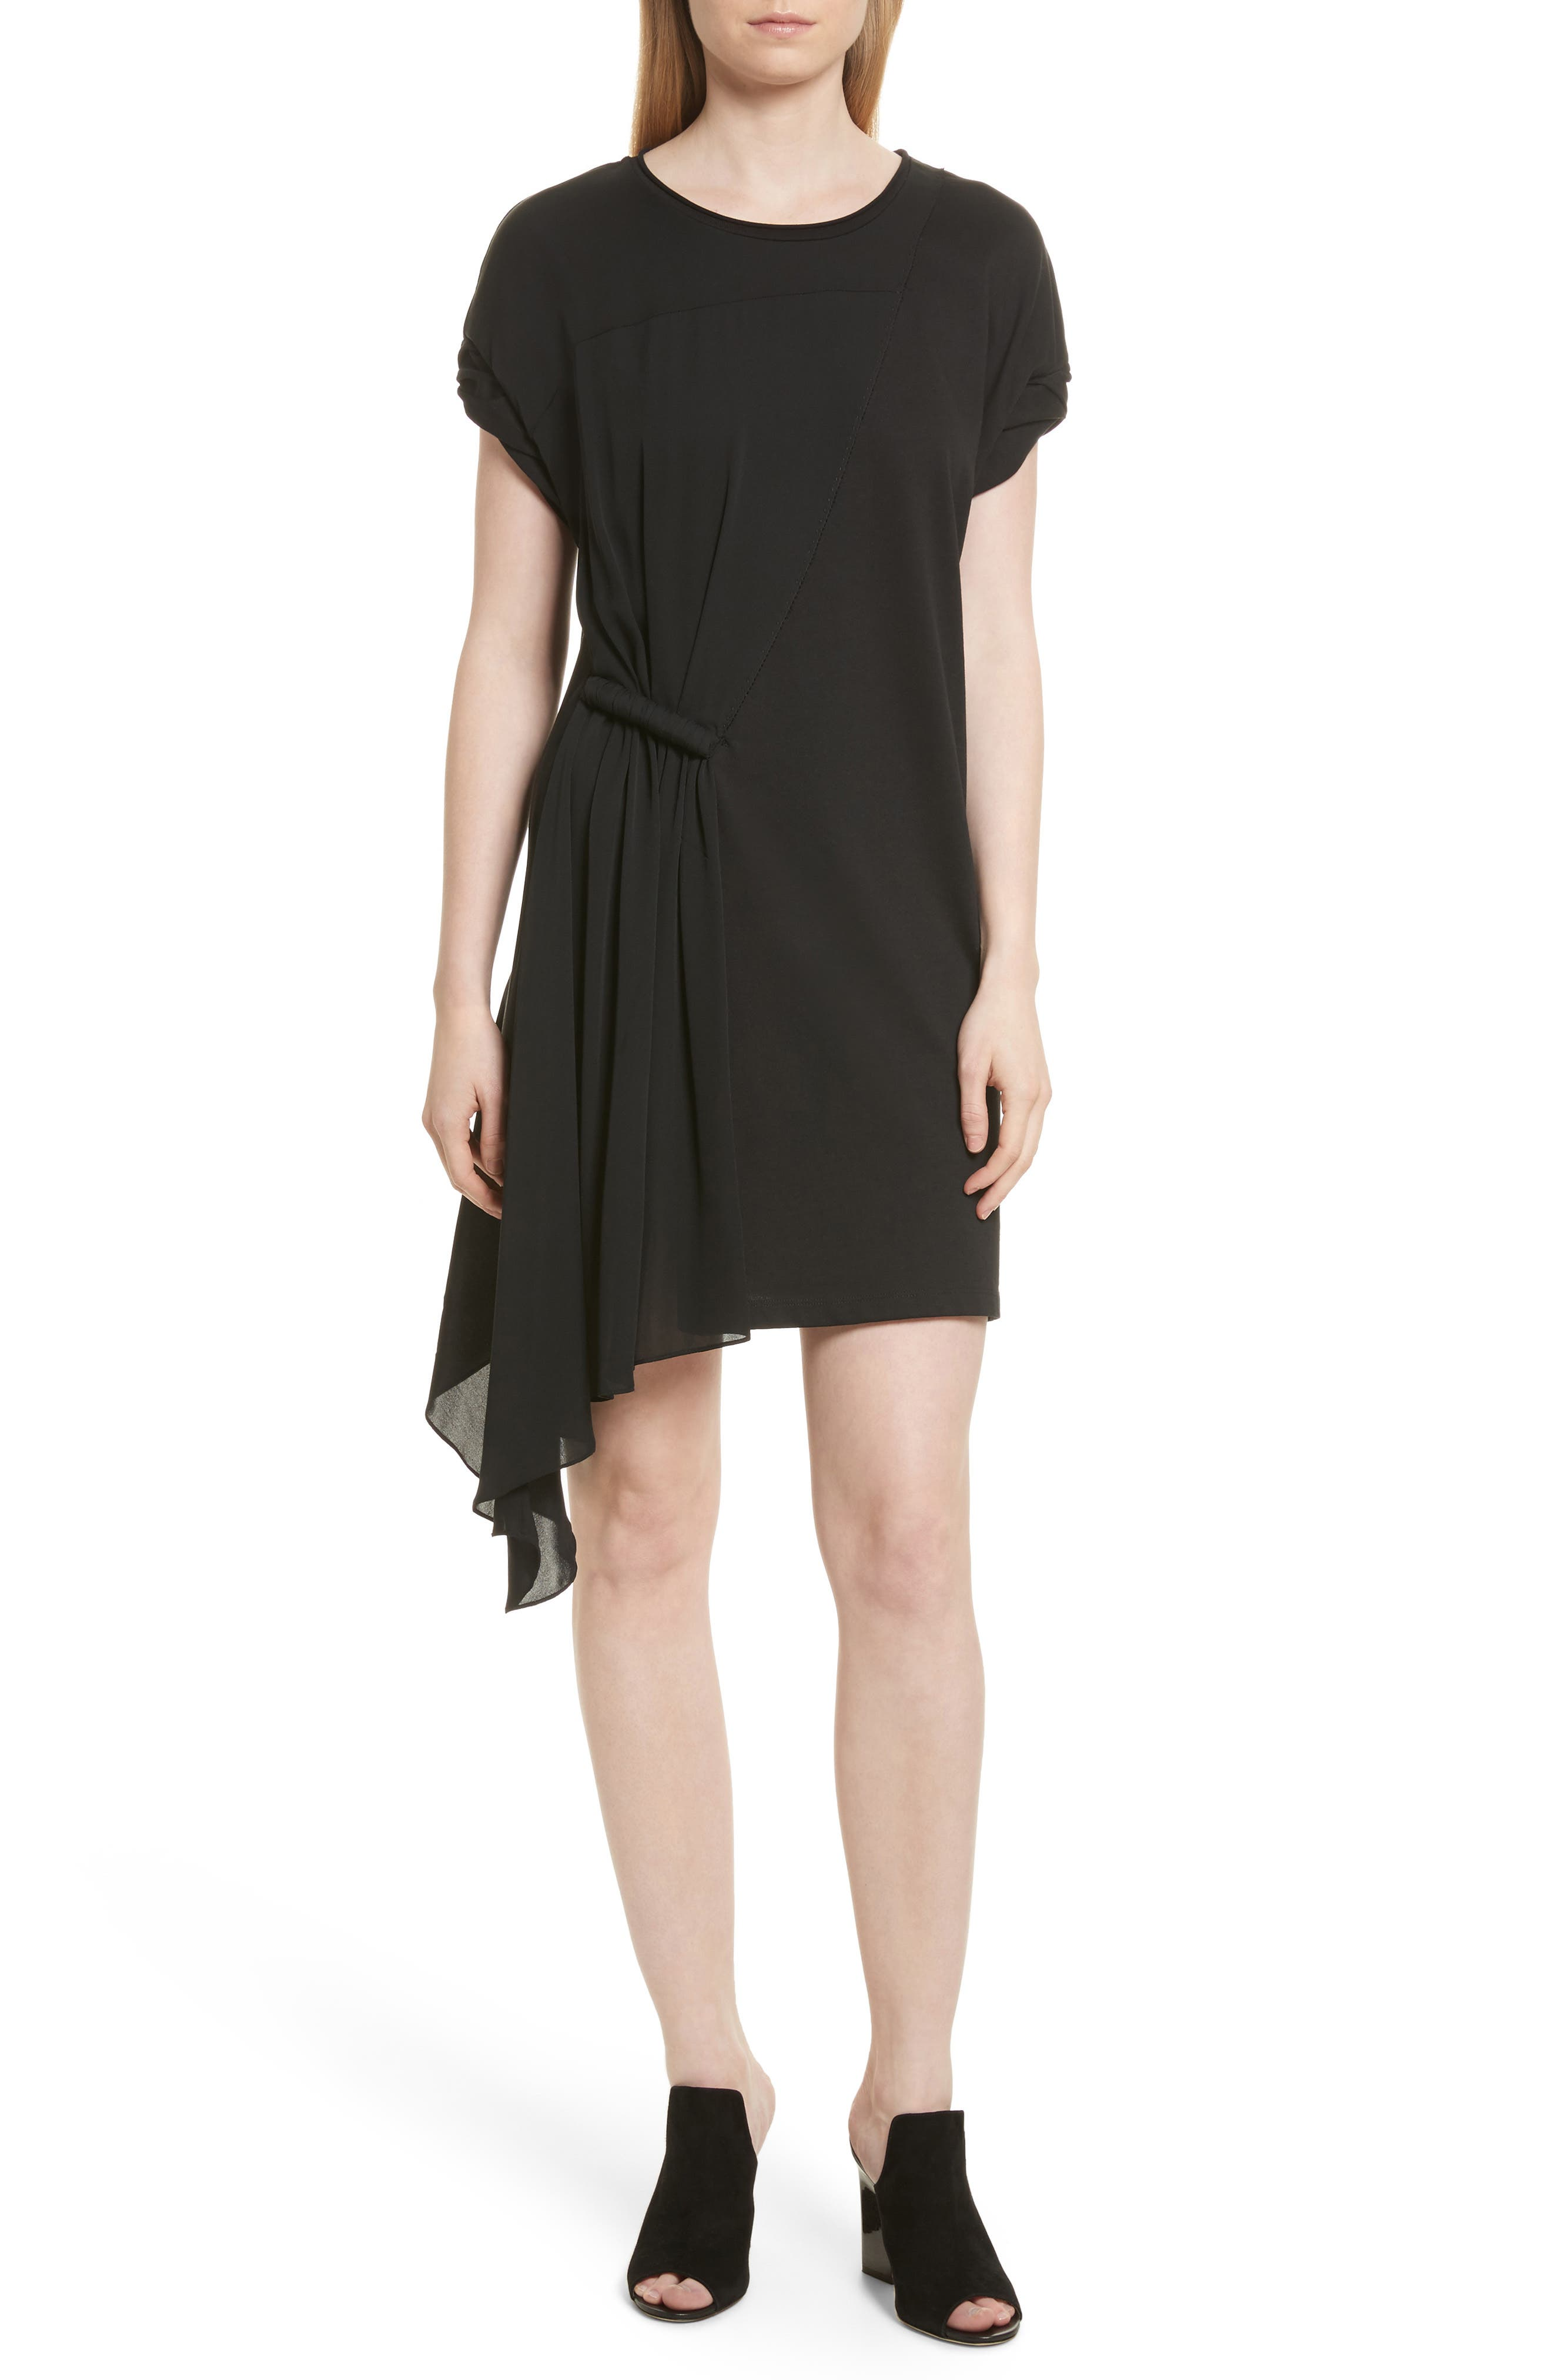 Main Image - 3.1 Phillip Lim Gathered Waist Dress